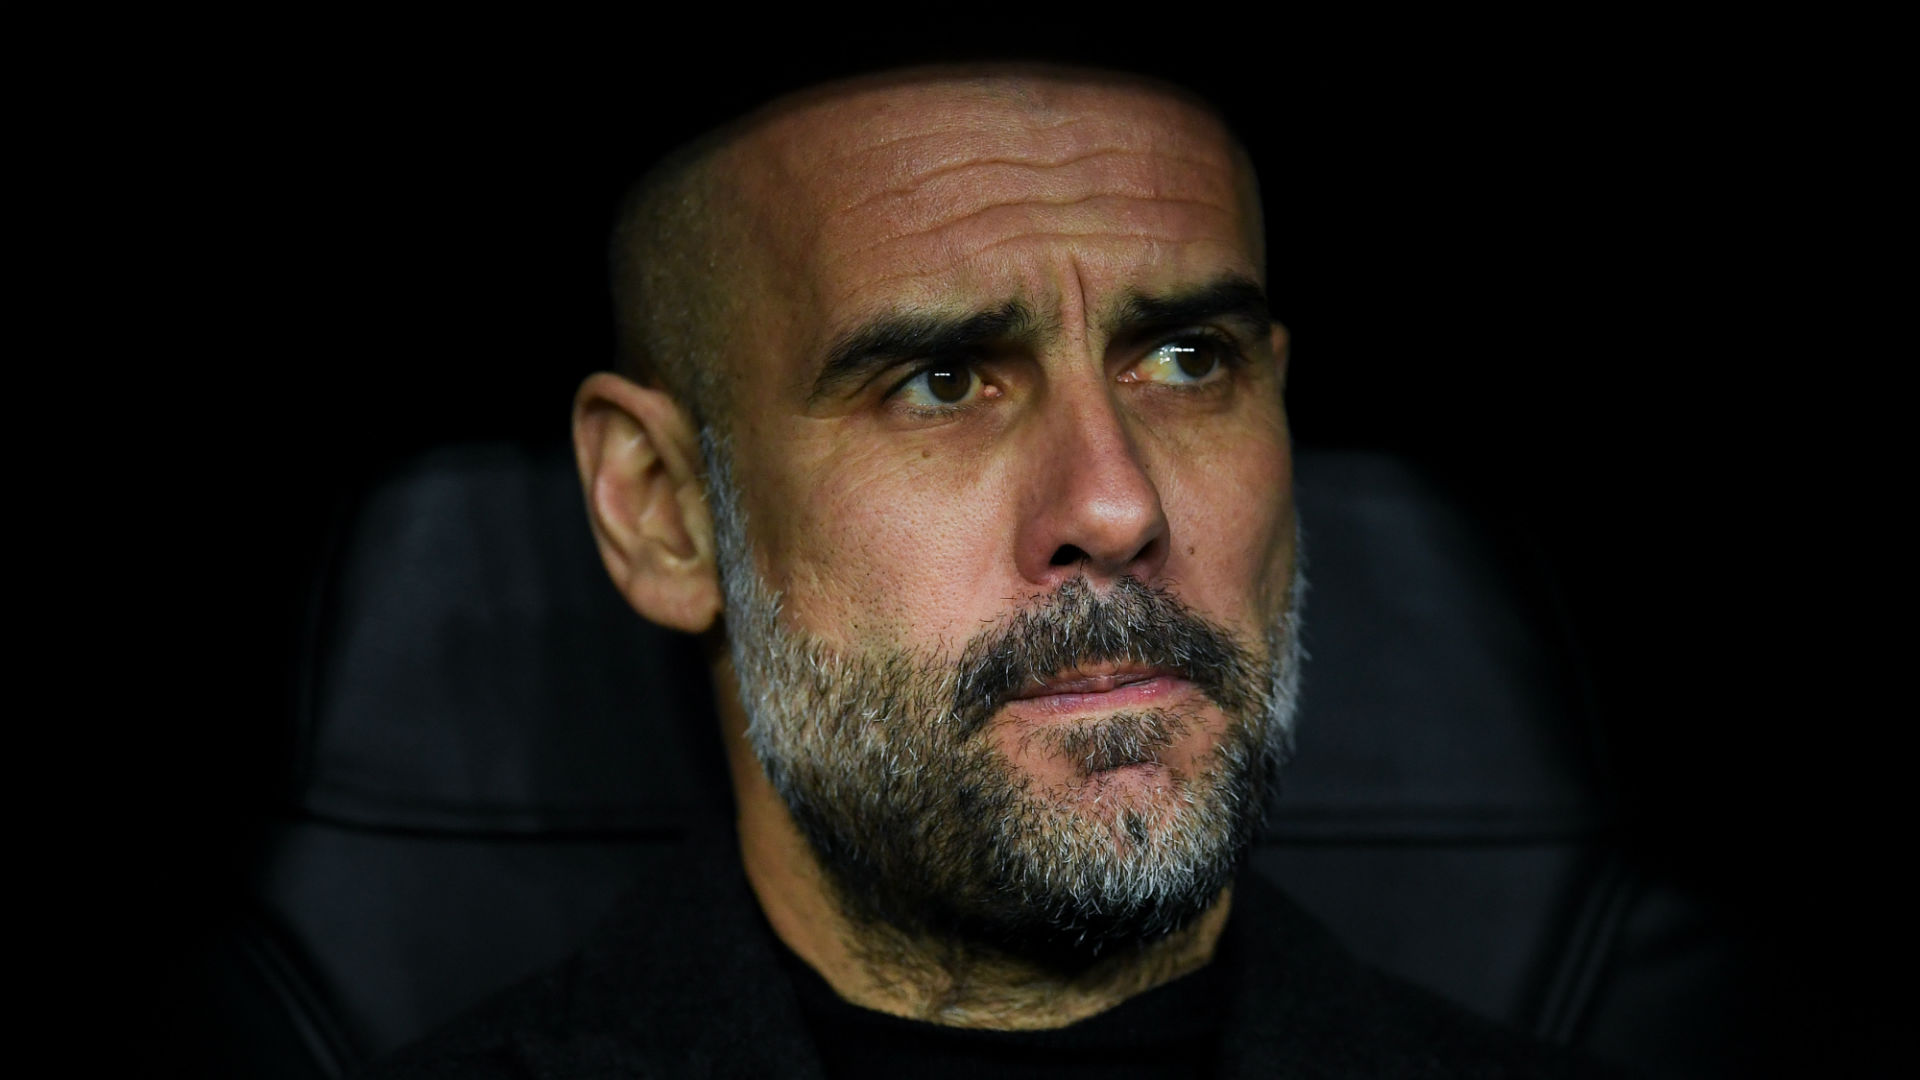 Guardiola's mother dies after contracting coronavirus, Man City confirm